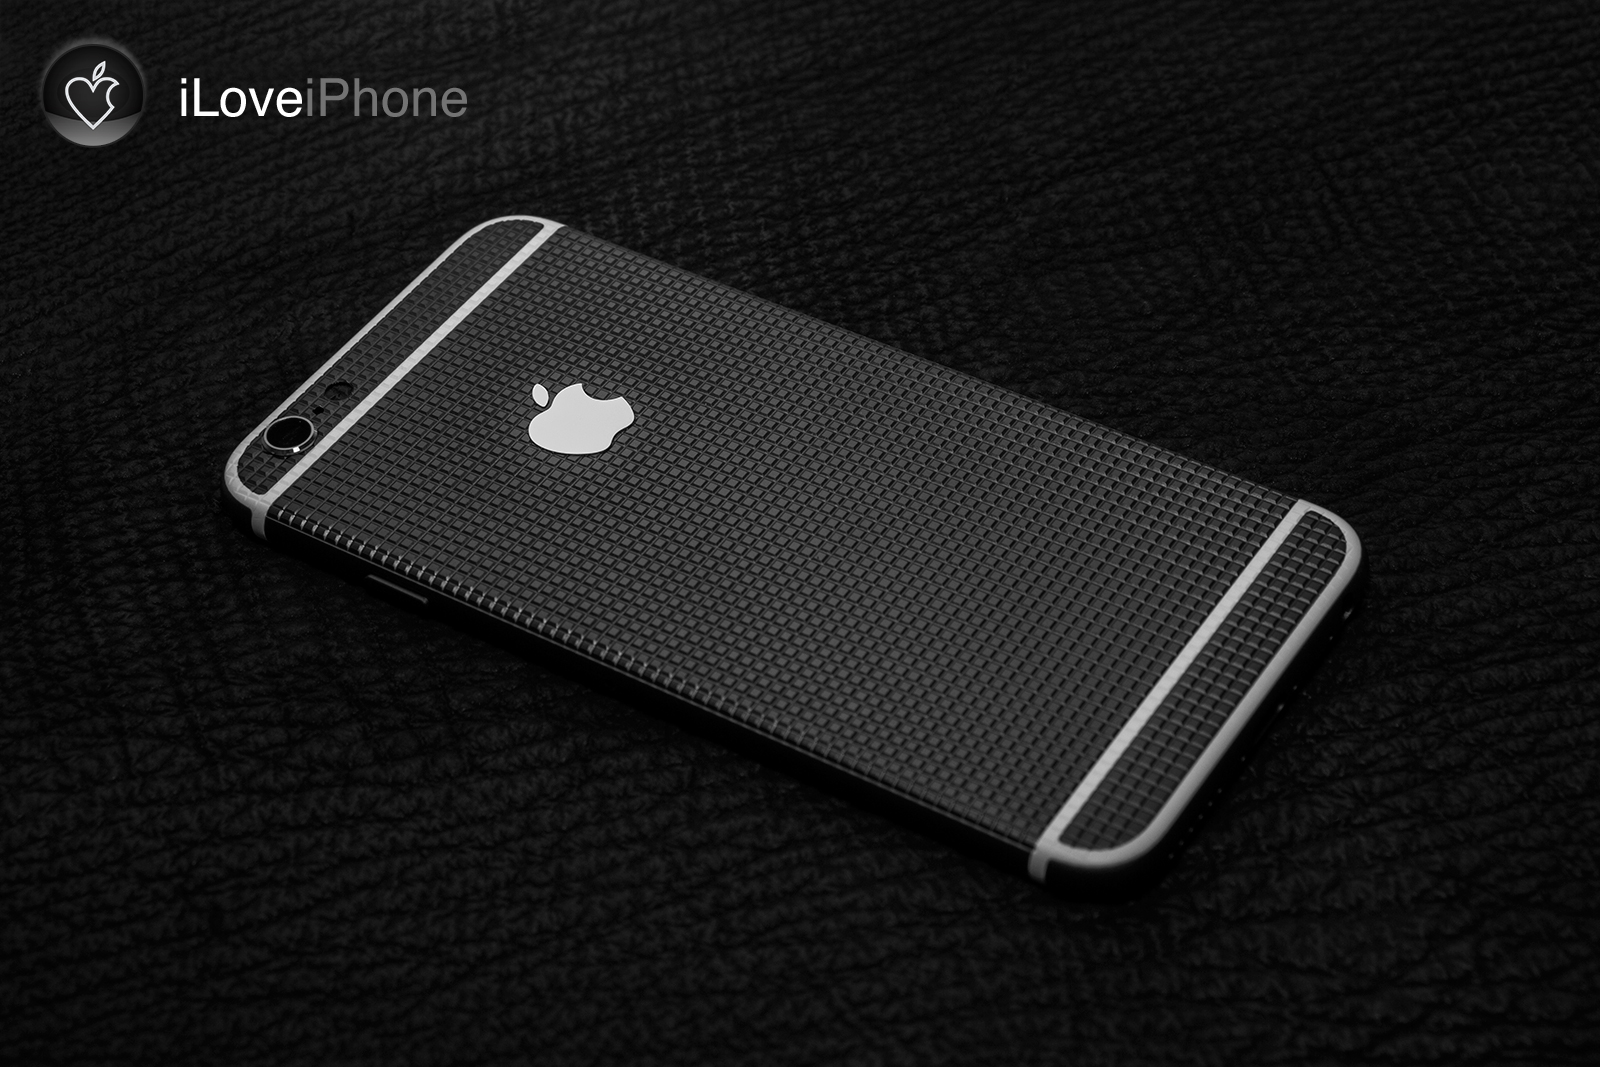 Черный корпус iPhone 6 Ultimate Black Special Edition